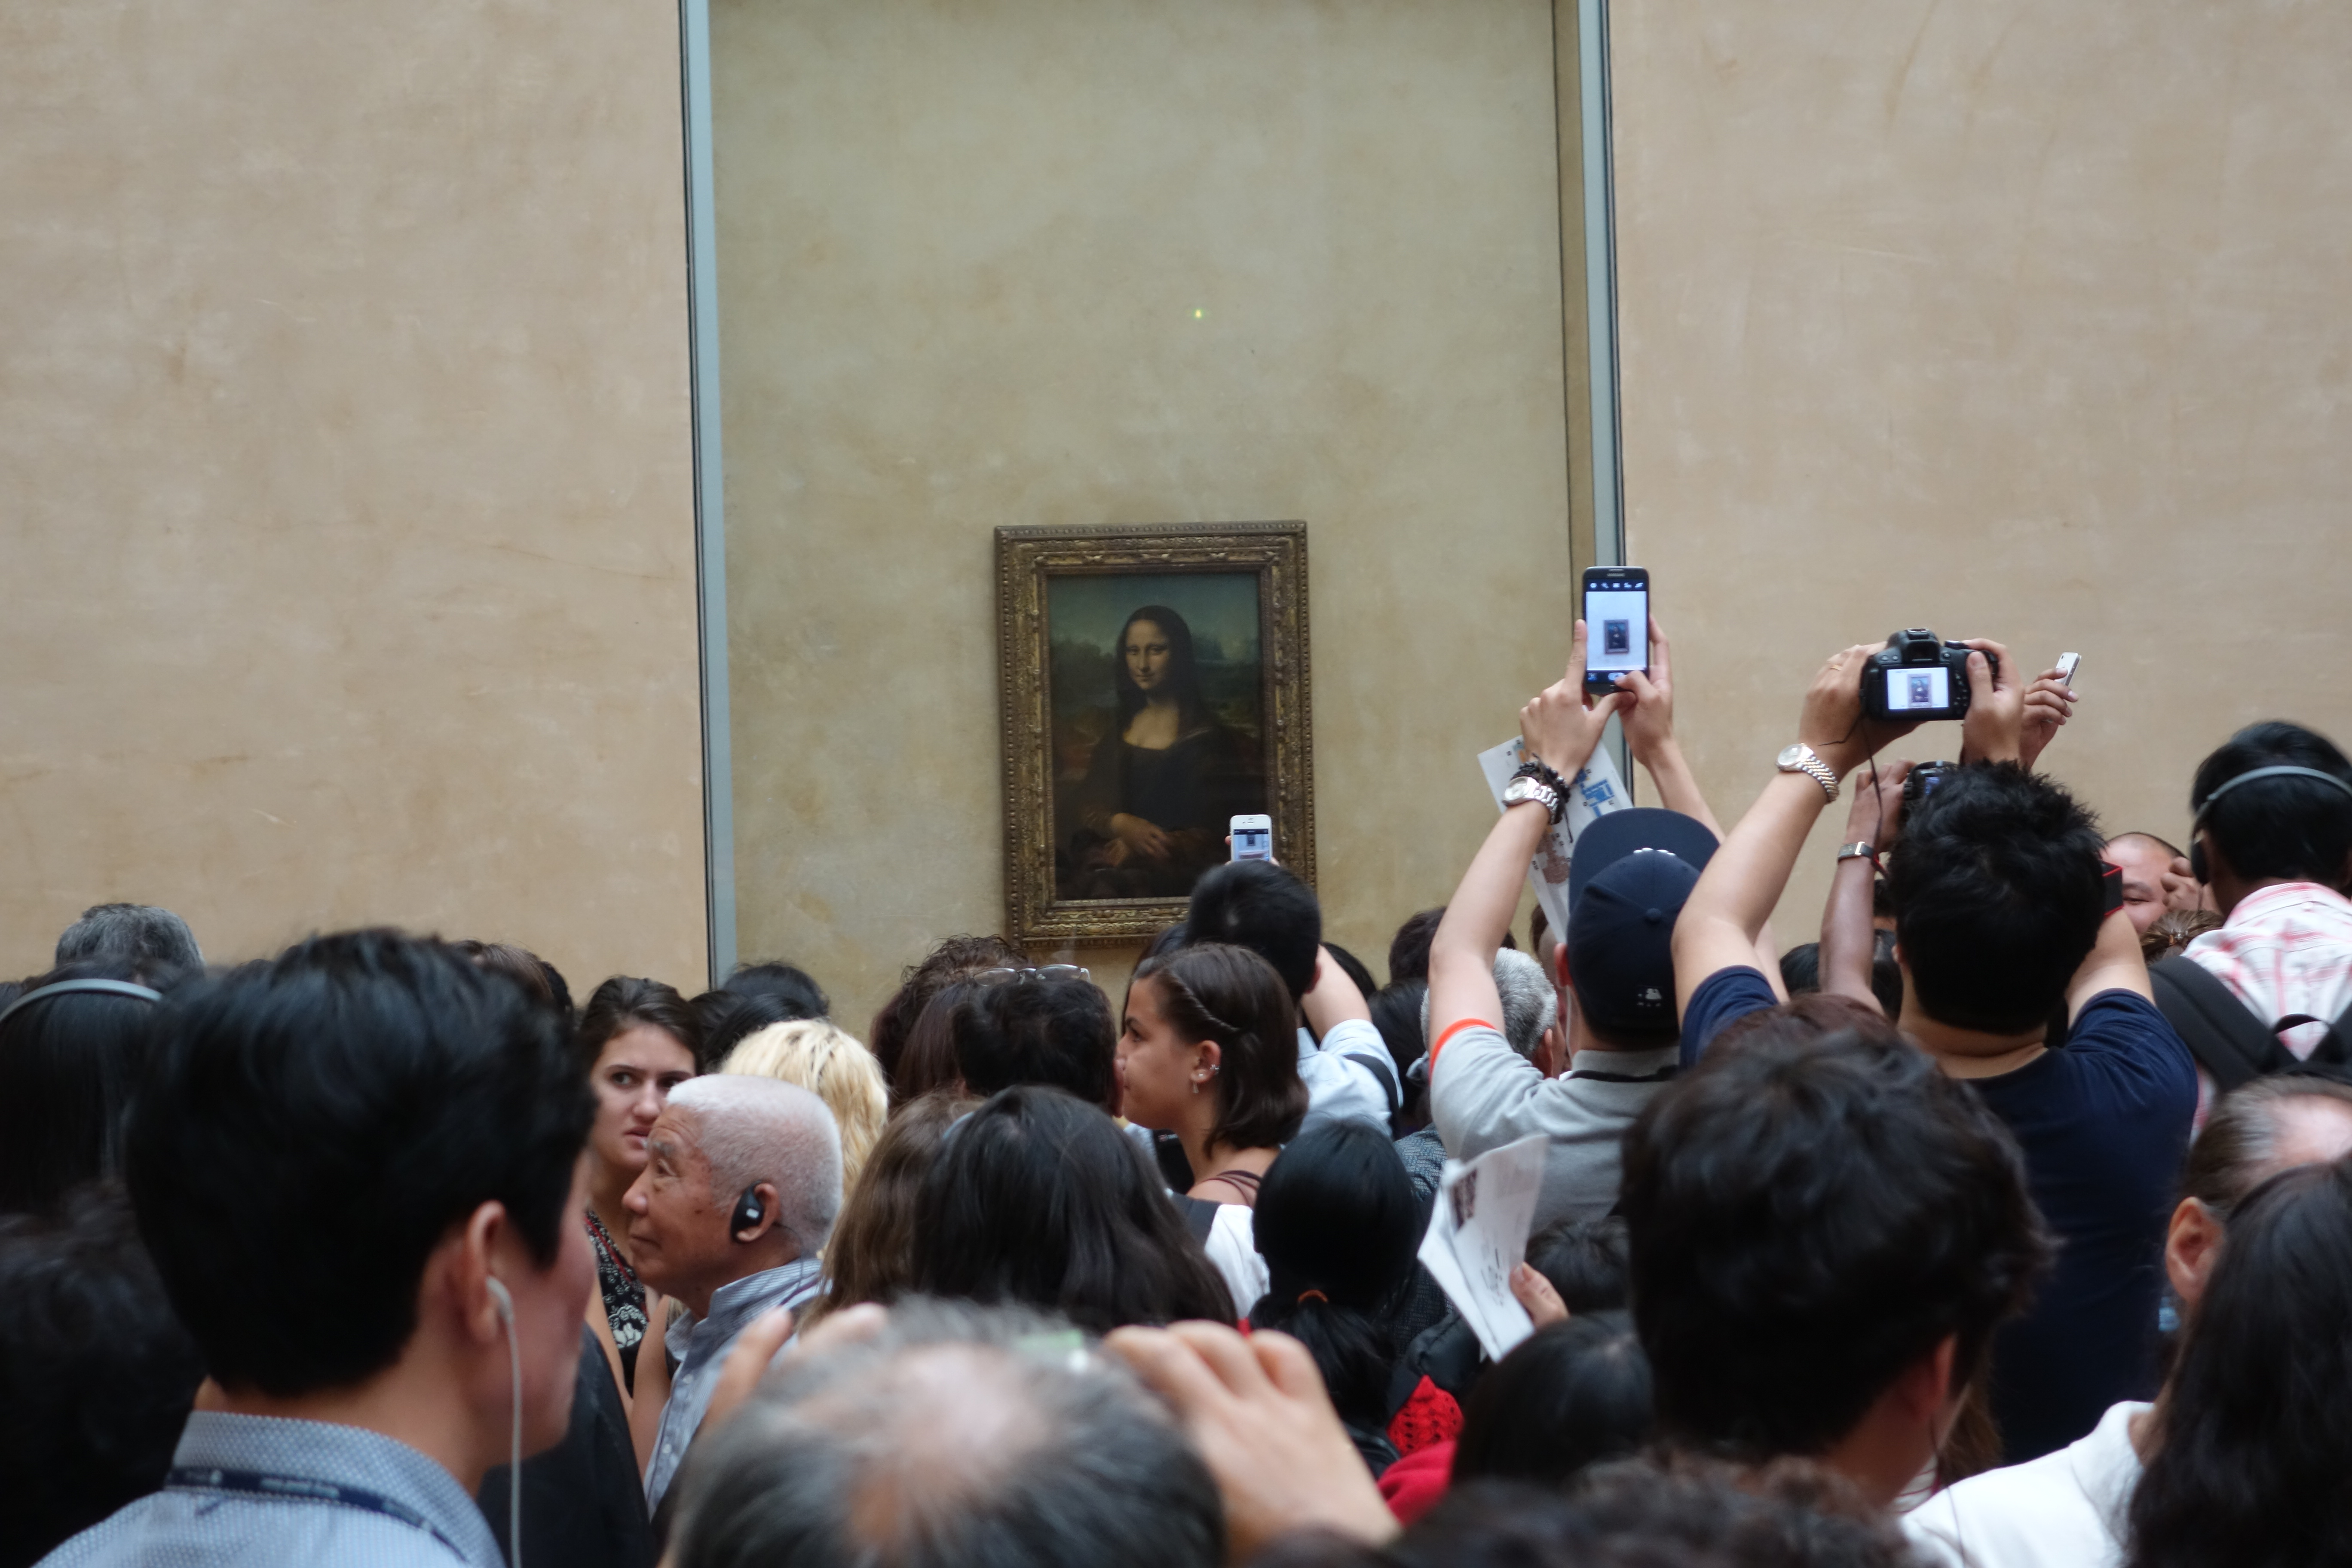 witness the mona lisa the queen of visual kitsch rule the mona her come hither looks is forever a siren beckoning tourists to the crush to the horror of invisibility since we are all nobody in comparison